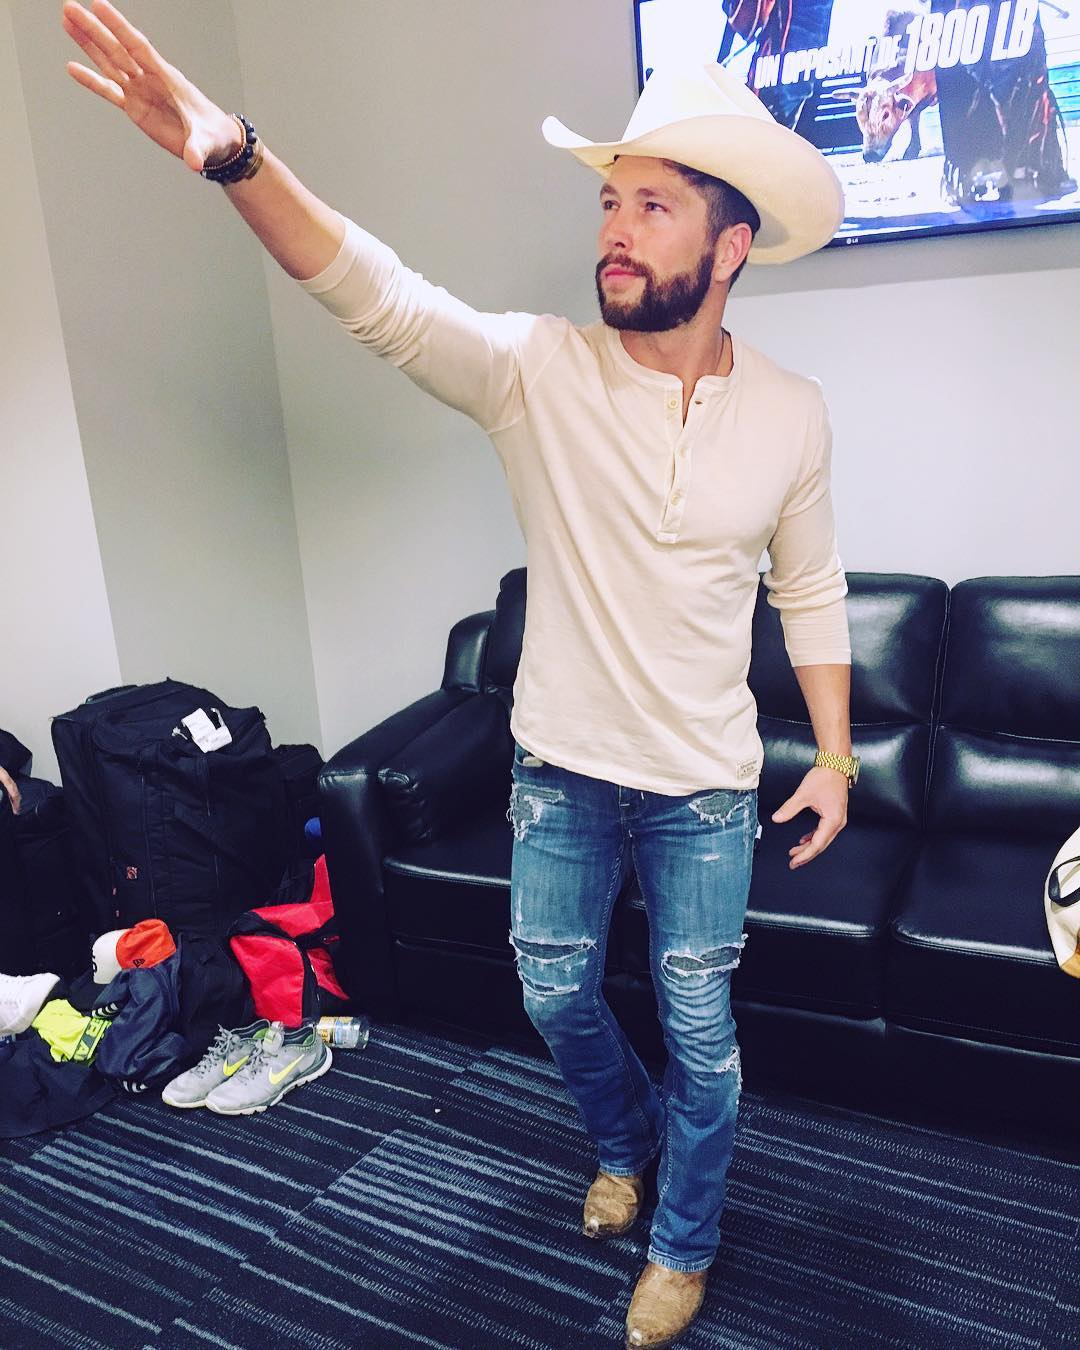 Chris Lane Instagram username